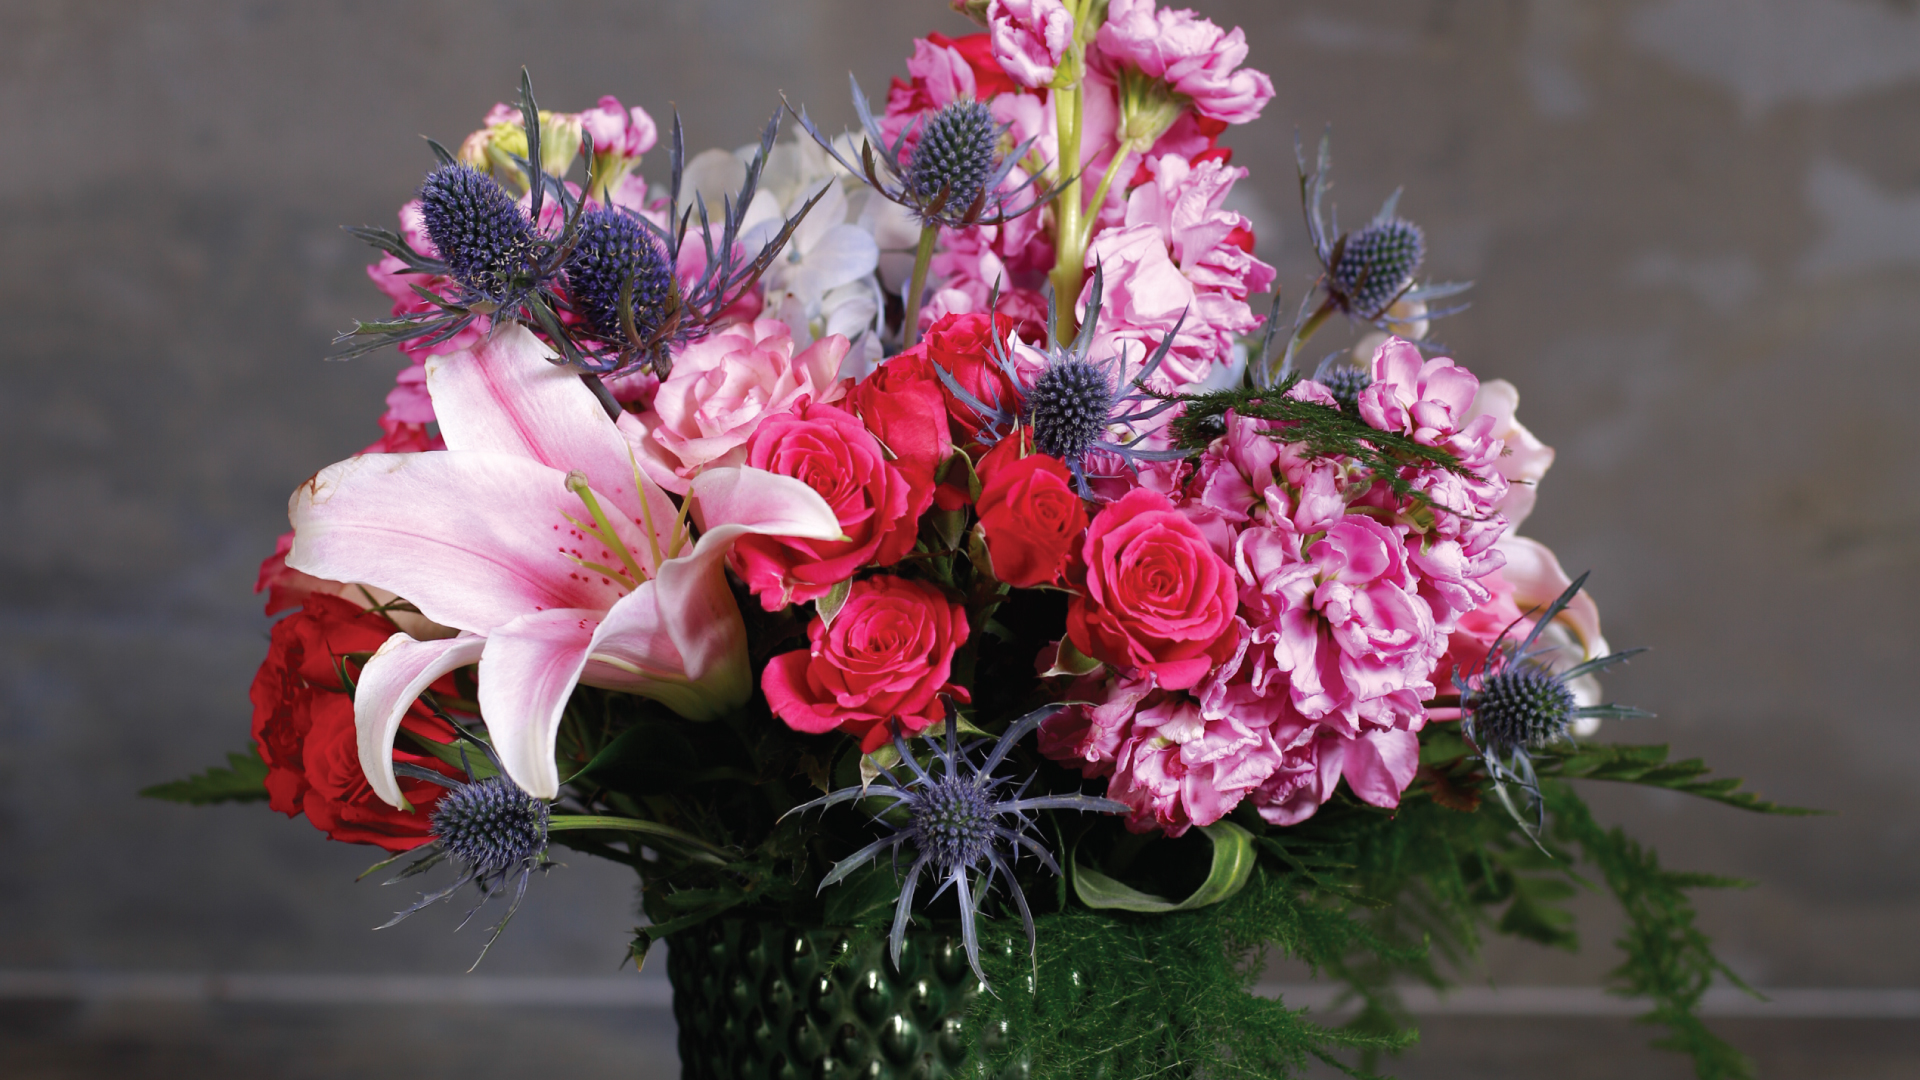 roiann ridley flowers for weddings special events personal sympathy